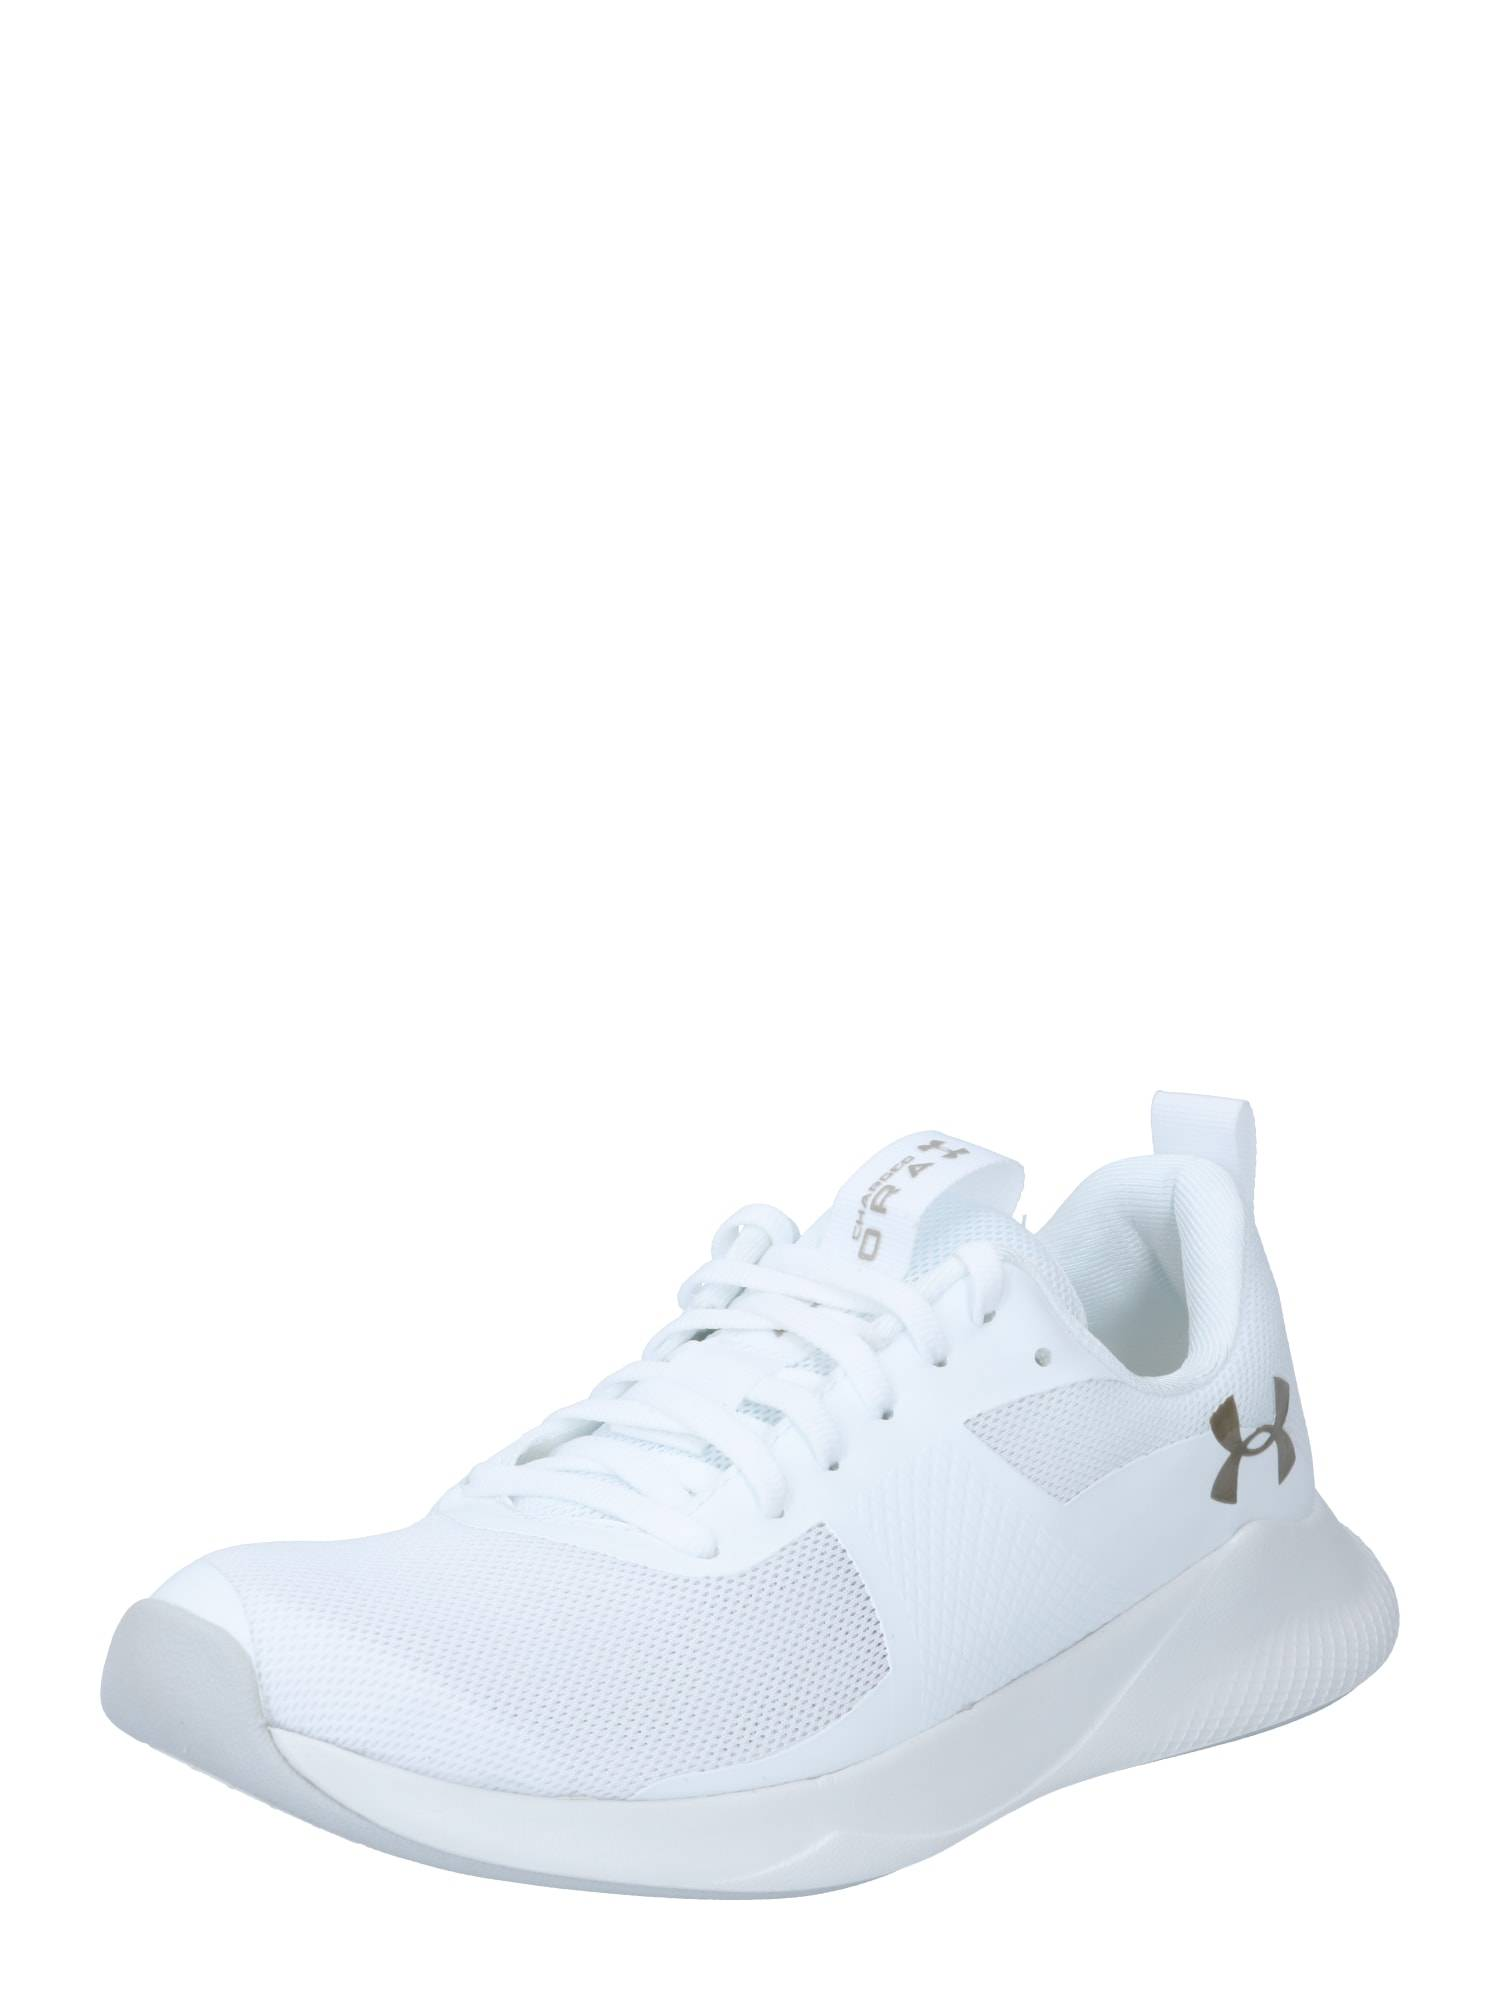 UNDER ARMOUR Chaussure de sport 'UA W Charged Aurora'  - Blanc - Taille: 7.5 - female